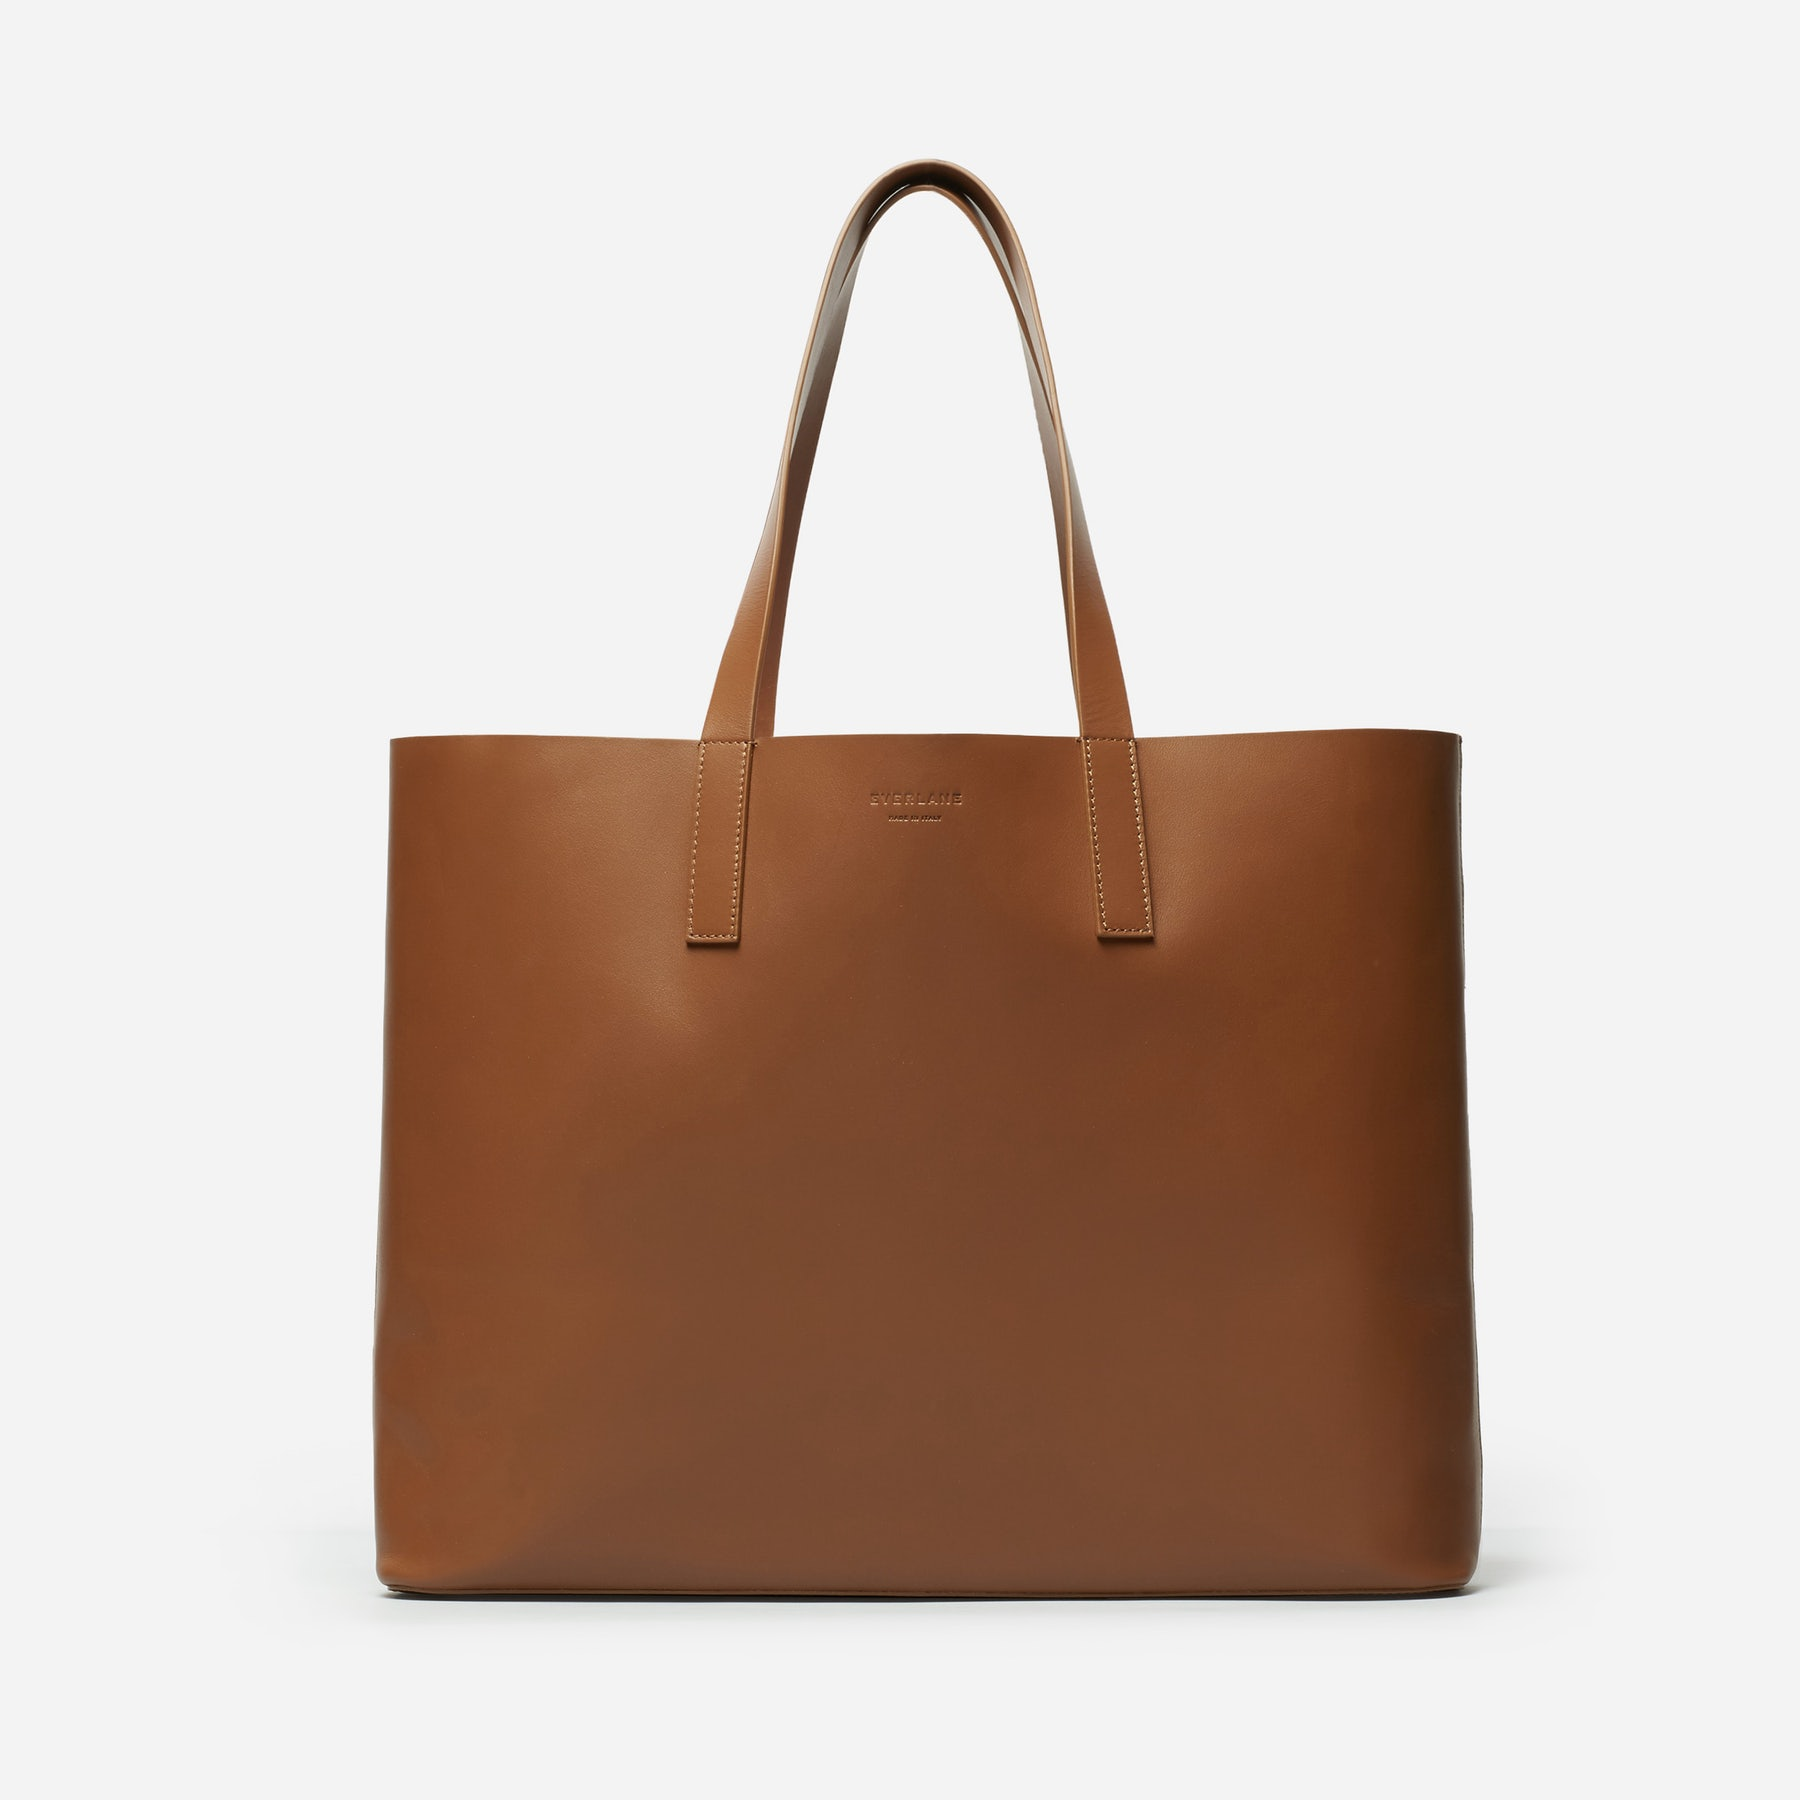 everlane-the day market tote - $165, www.Everlane.com If it's fit for Meghan, it's fit for us.